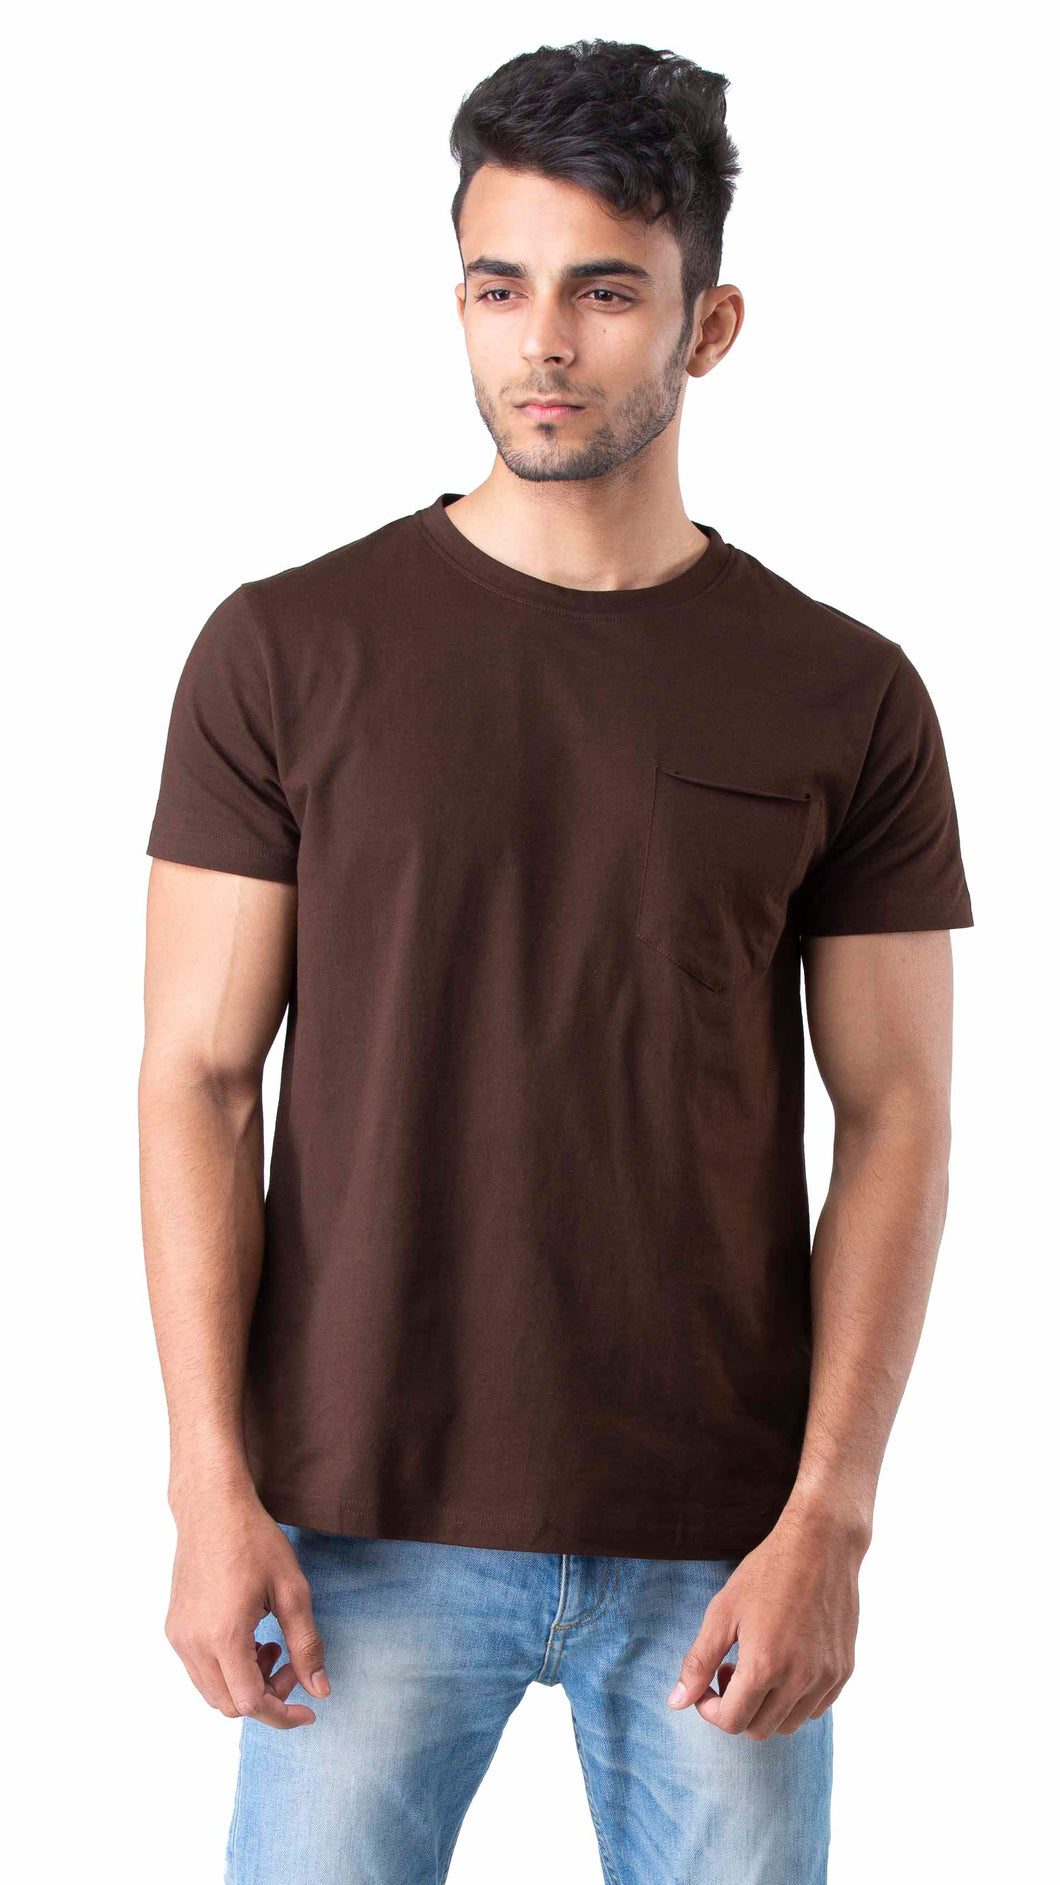 Half Sleeve Maroon With Pocket Round neck Tee